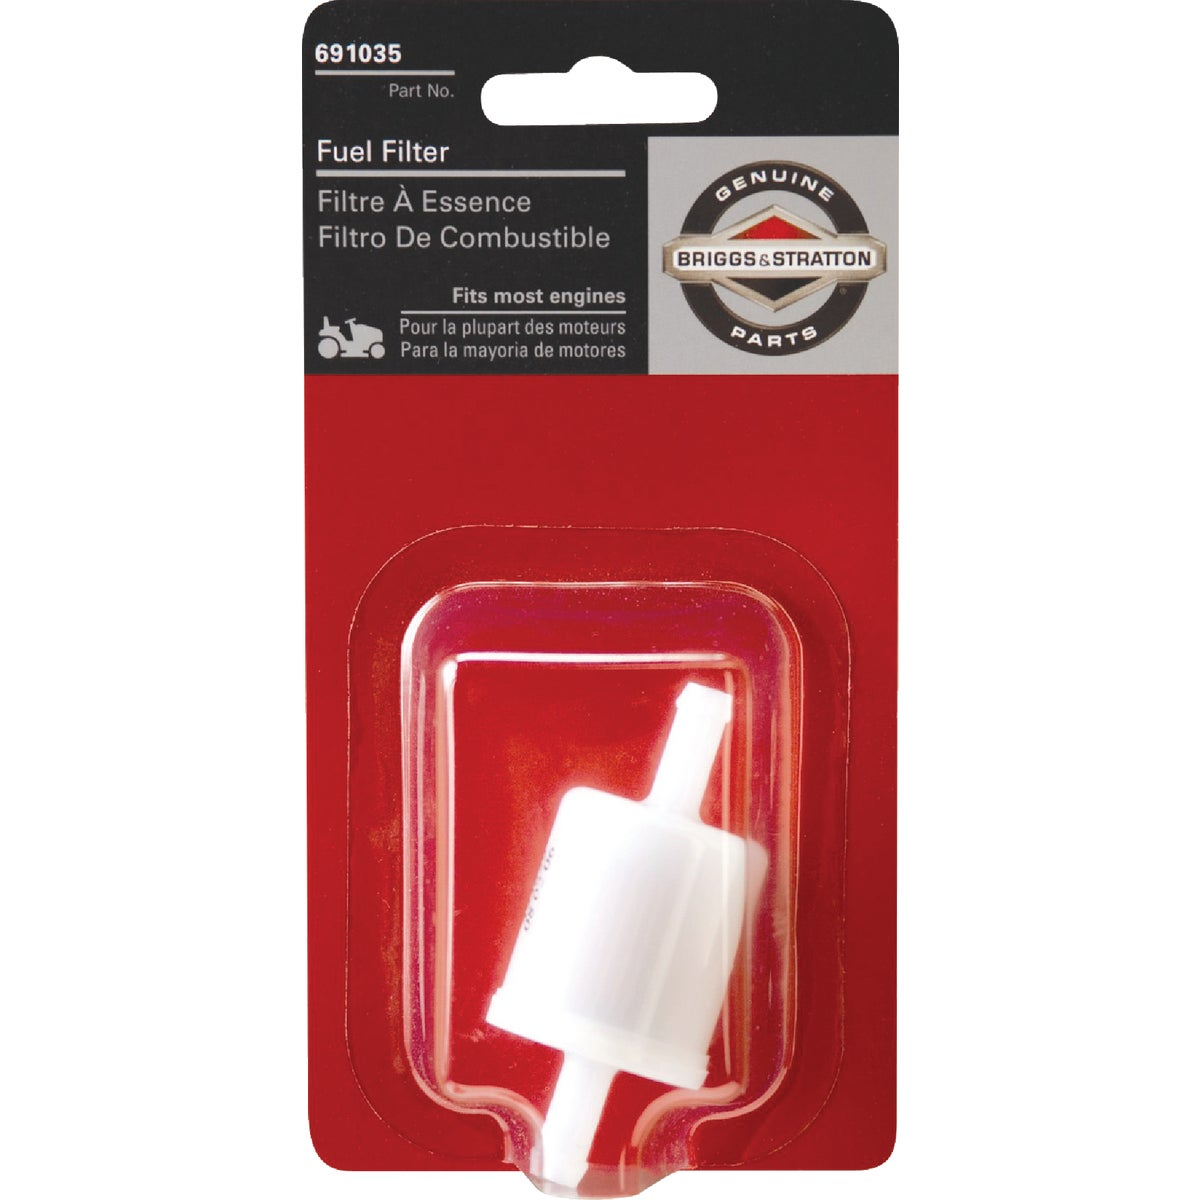 LAWN TRACTOR FUEL FILTER - 5065K by Centrl Pwr Sys/brigg